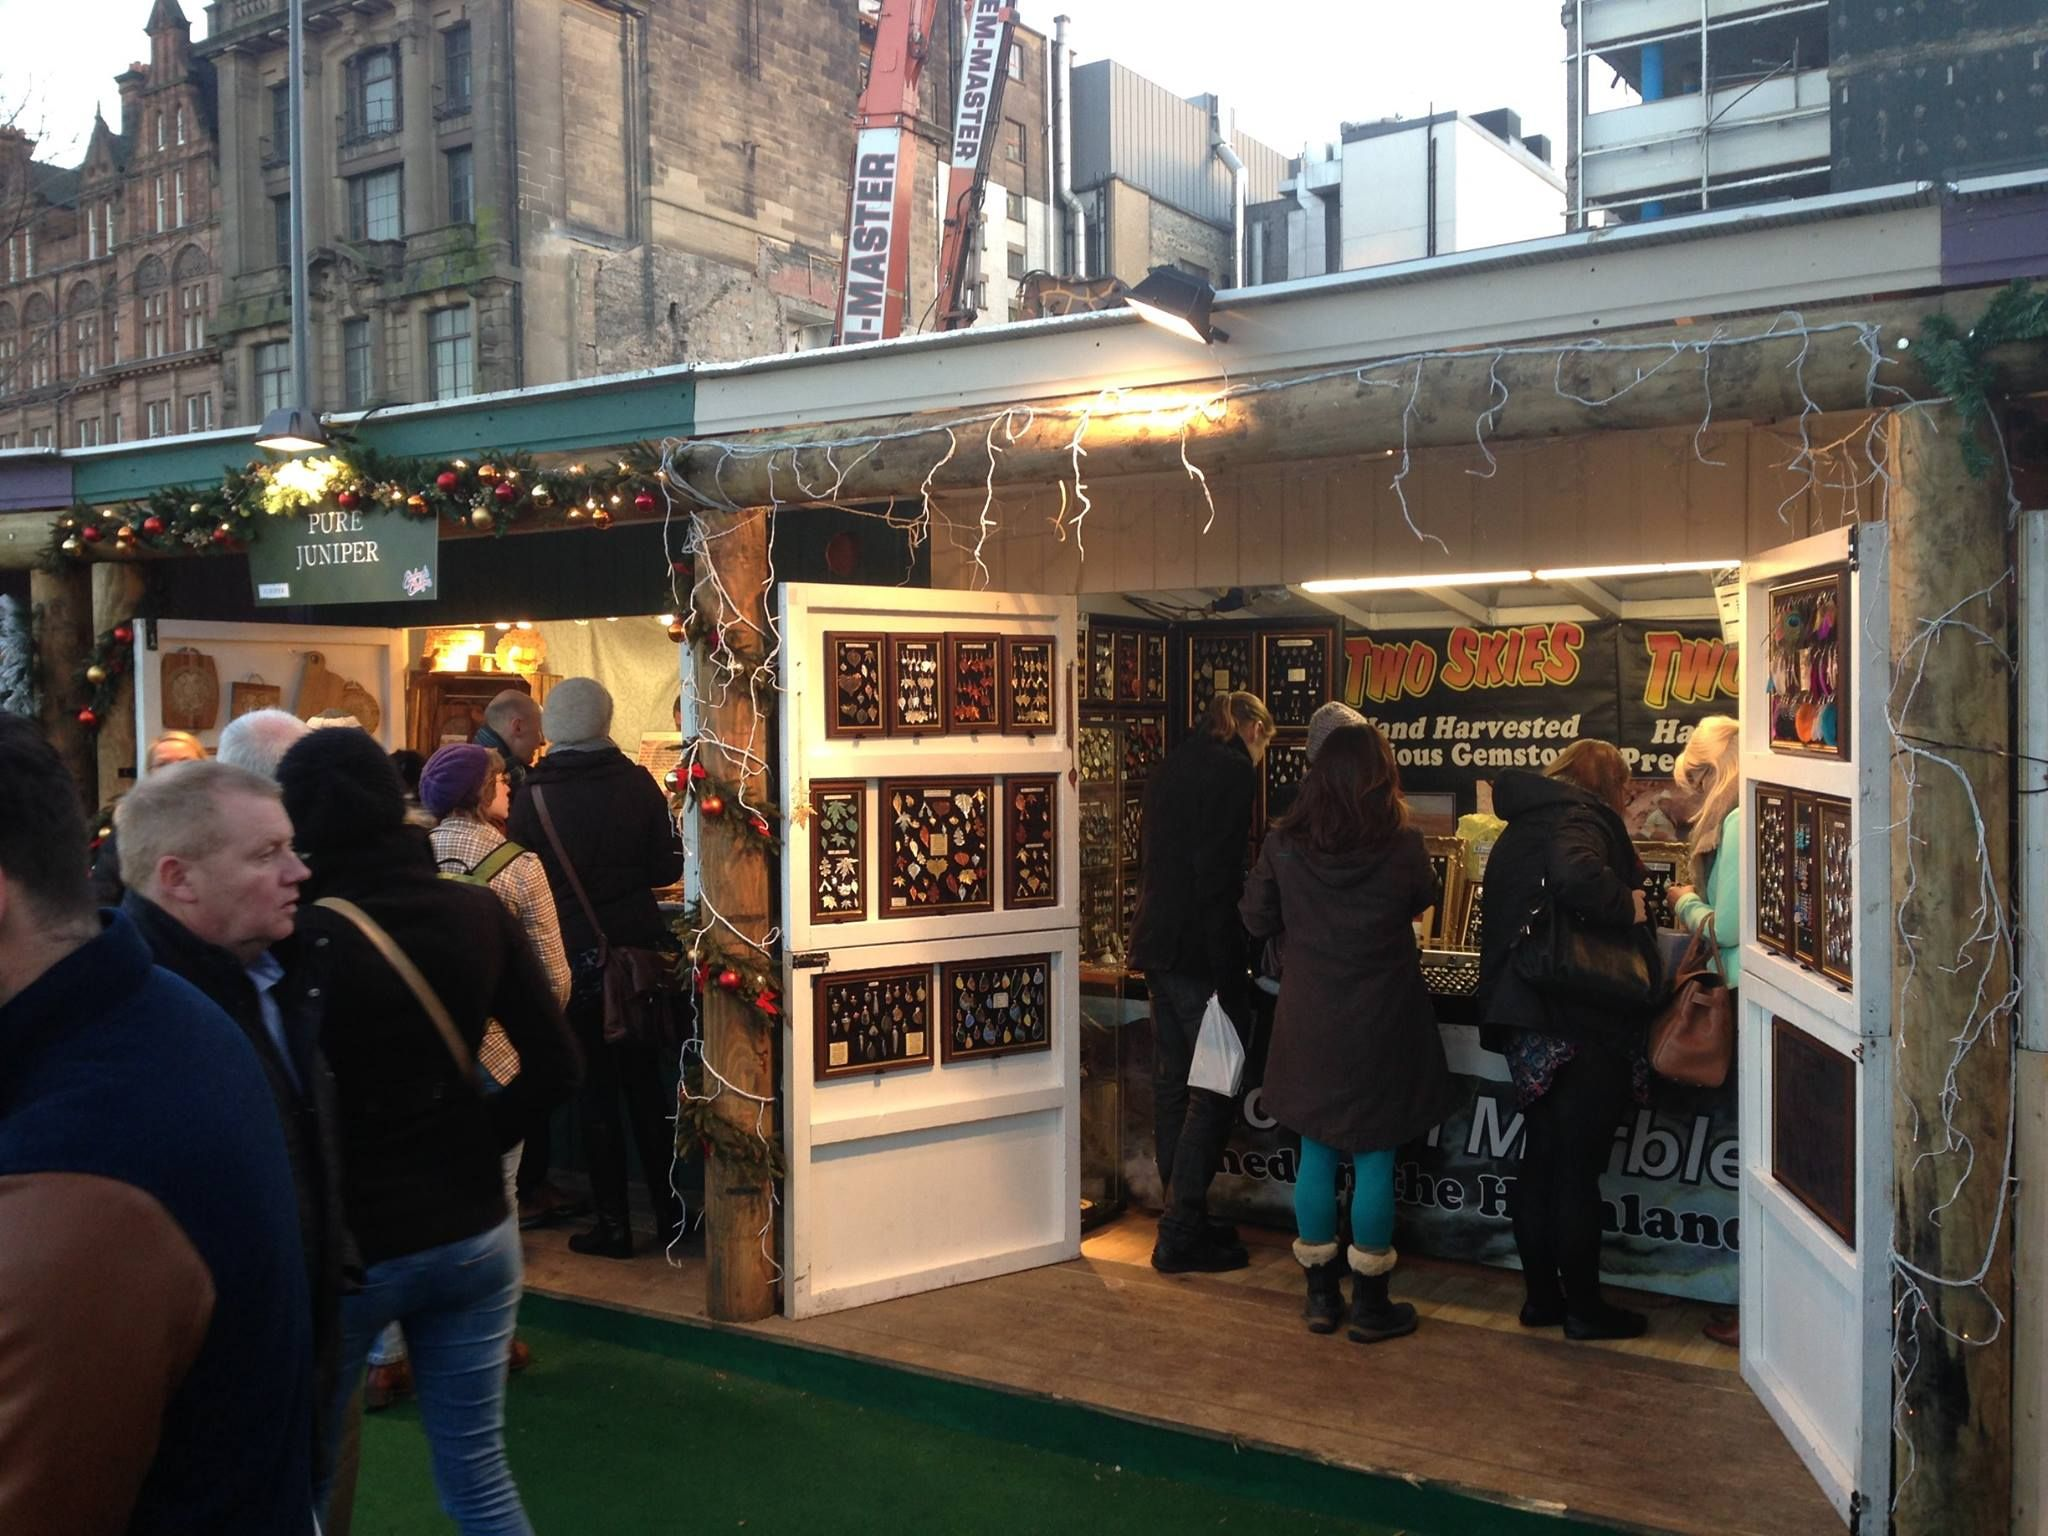 Two Skies Christmas stall in Edinburgh.